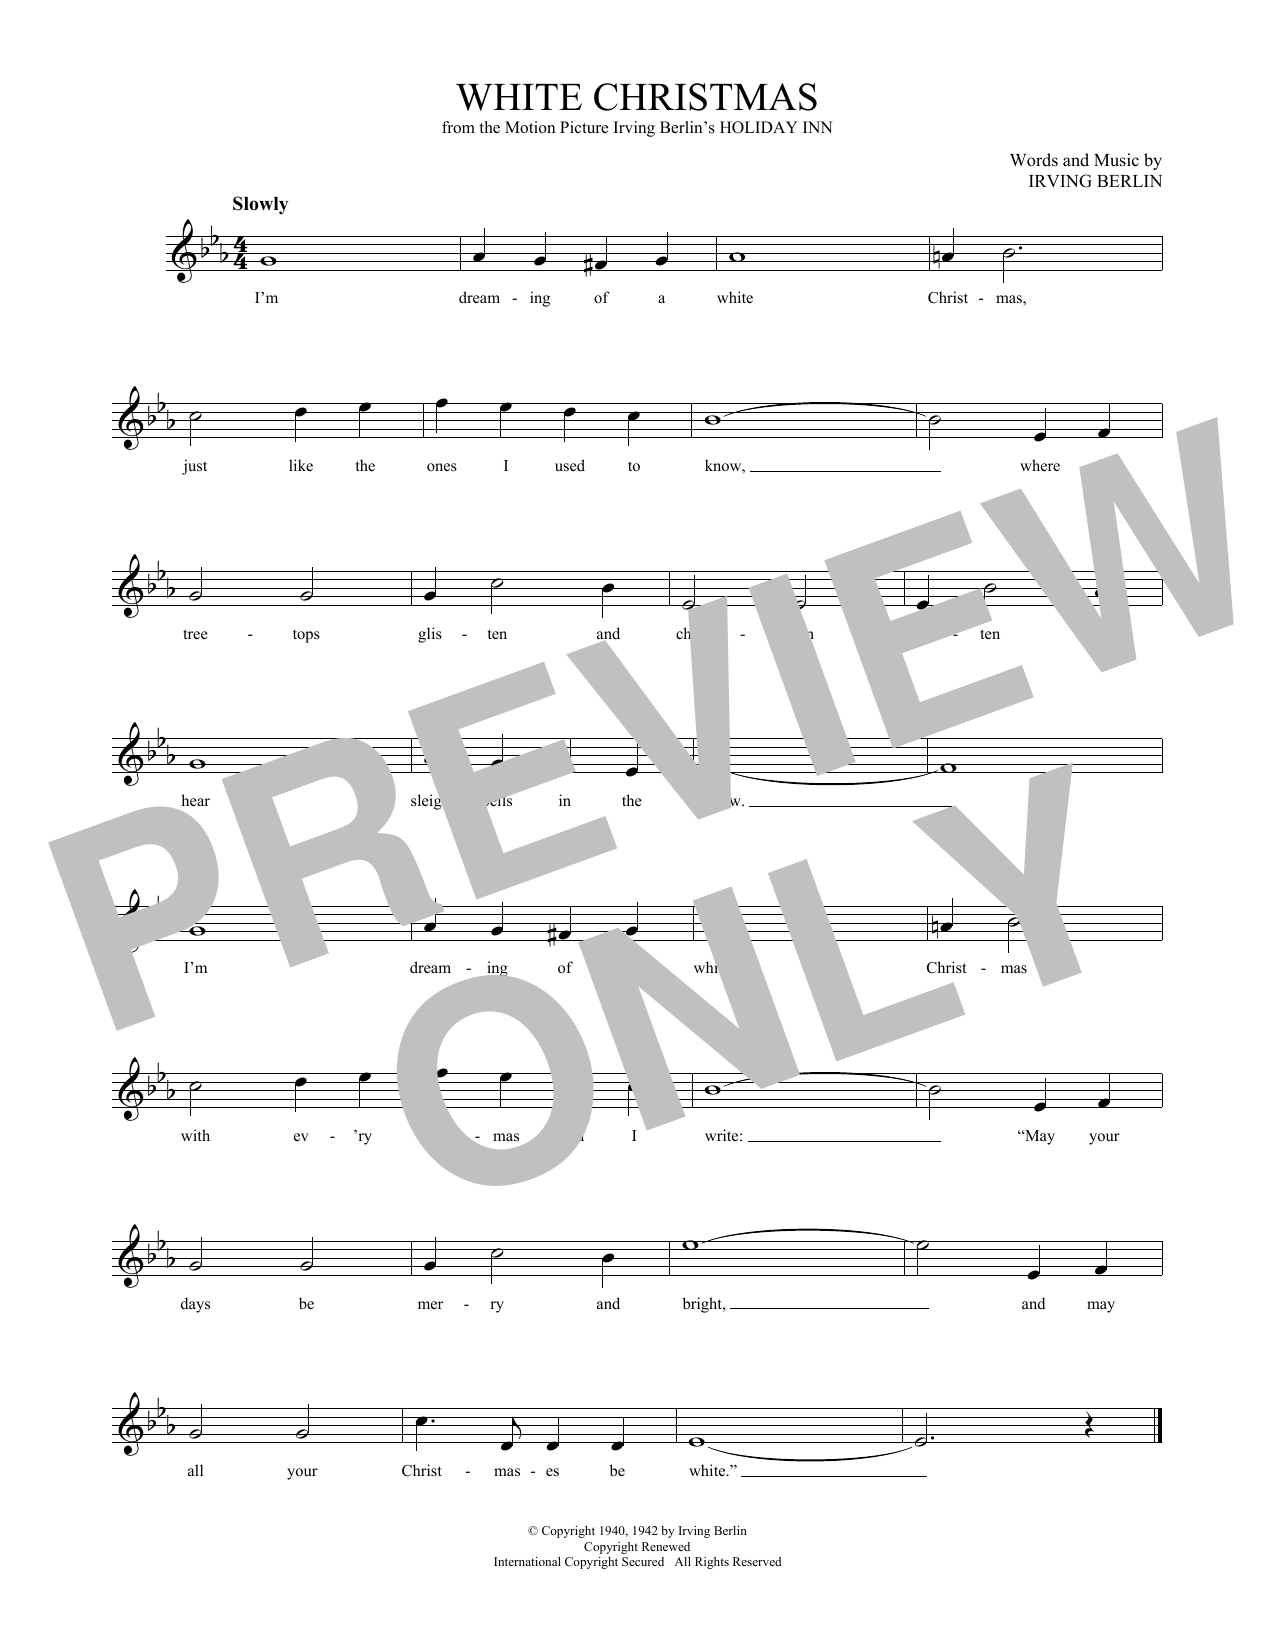 White Christmas Sheet Music Score by Irving Berlin | Printable ...